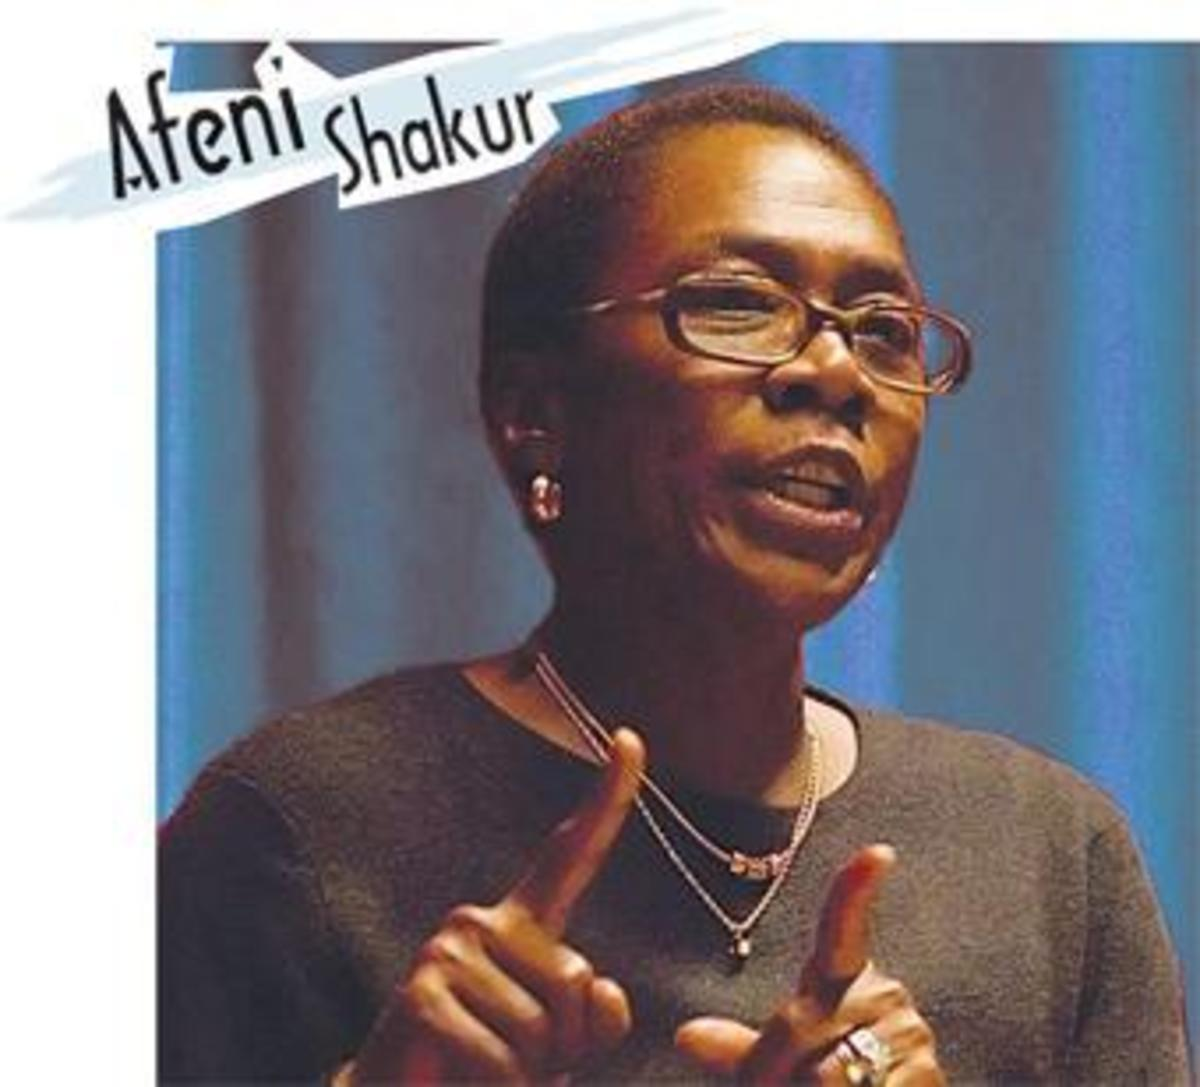 Afeni Shakur, Mother of Tupac and Former Member of the Black Panther Party for Self Defense